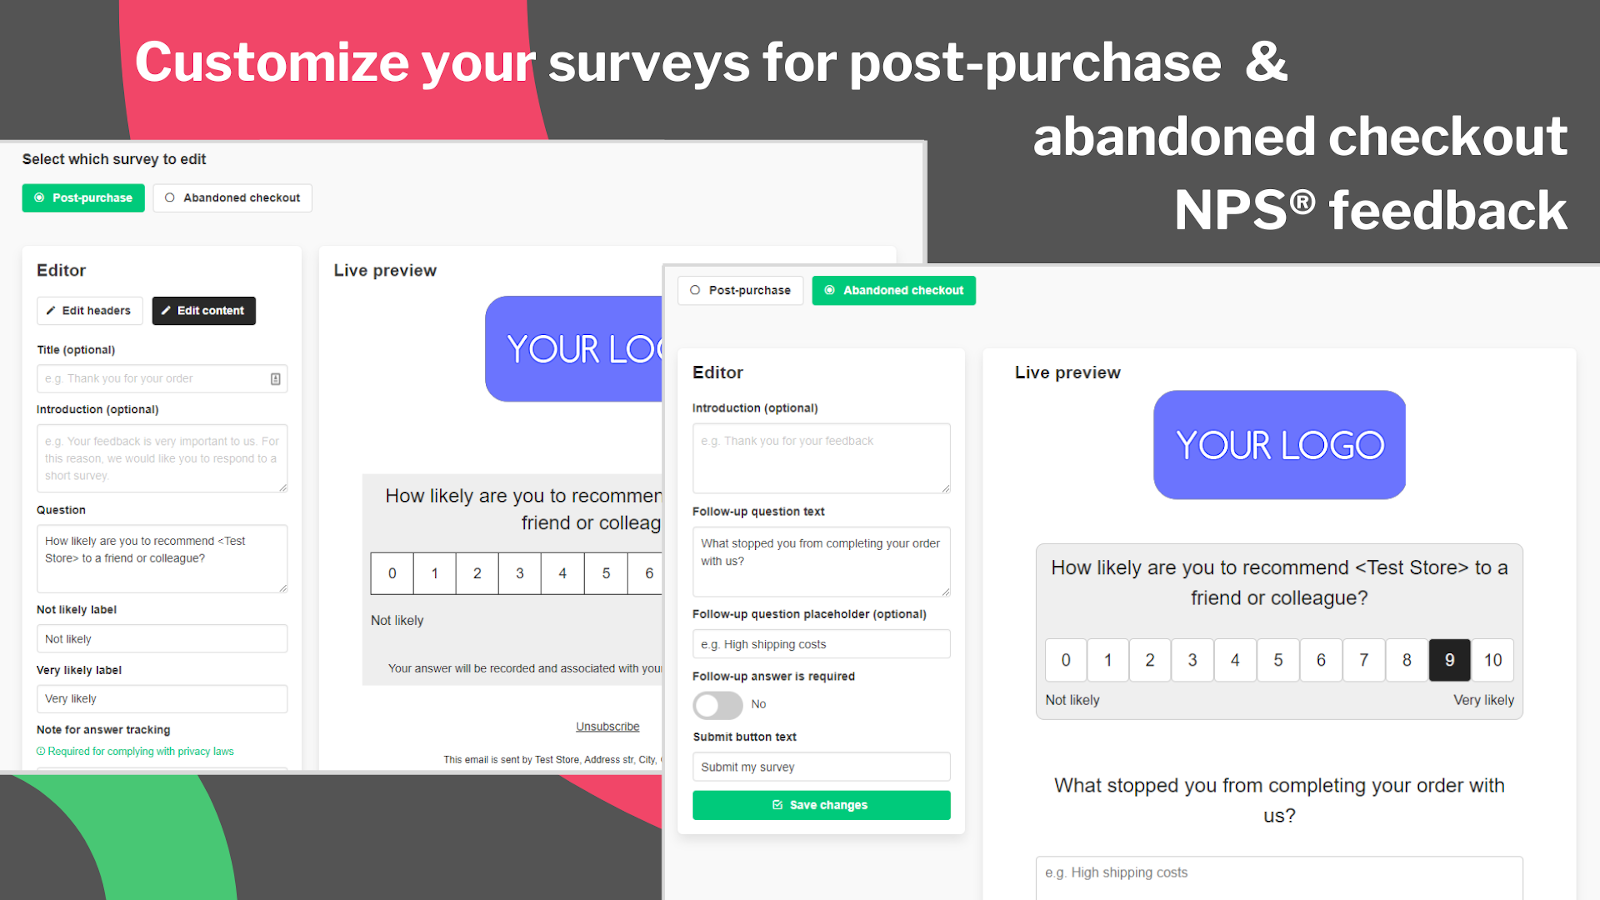 Customize your surveys' email & page to your needs